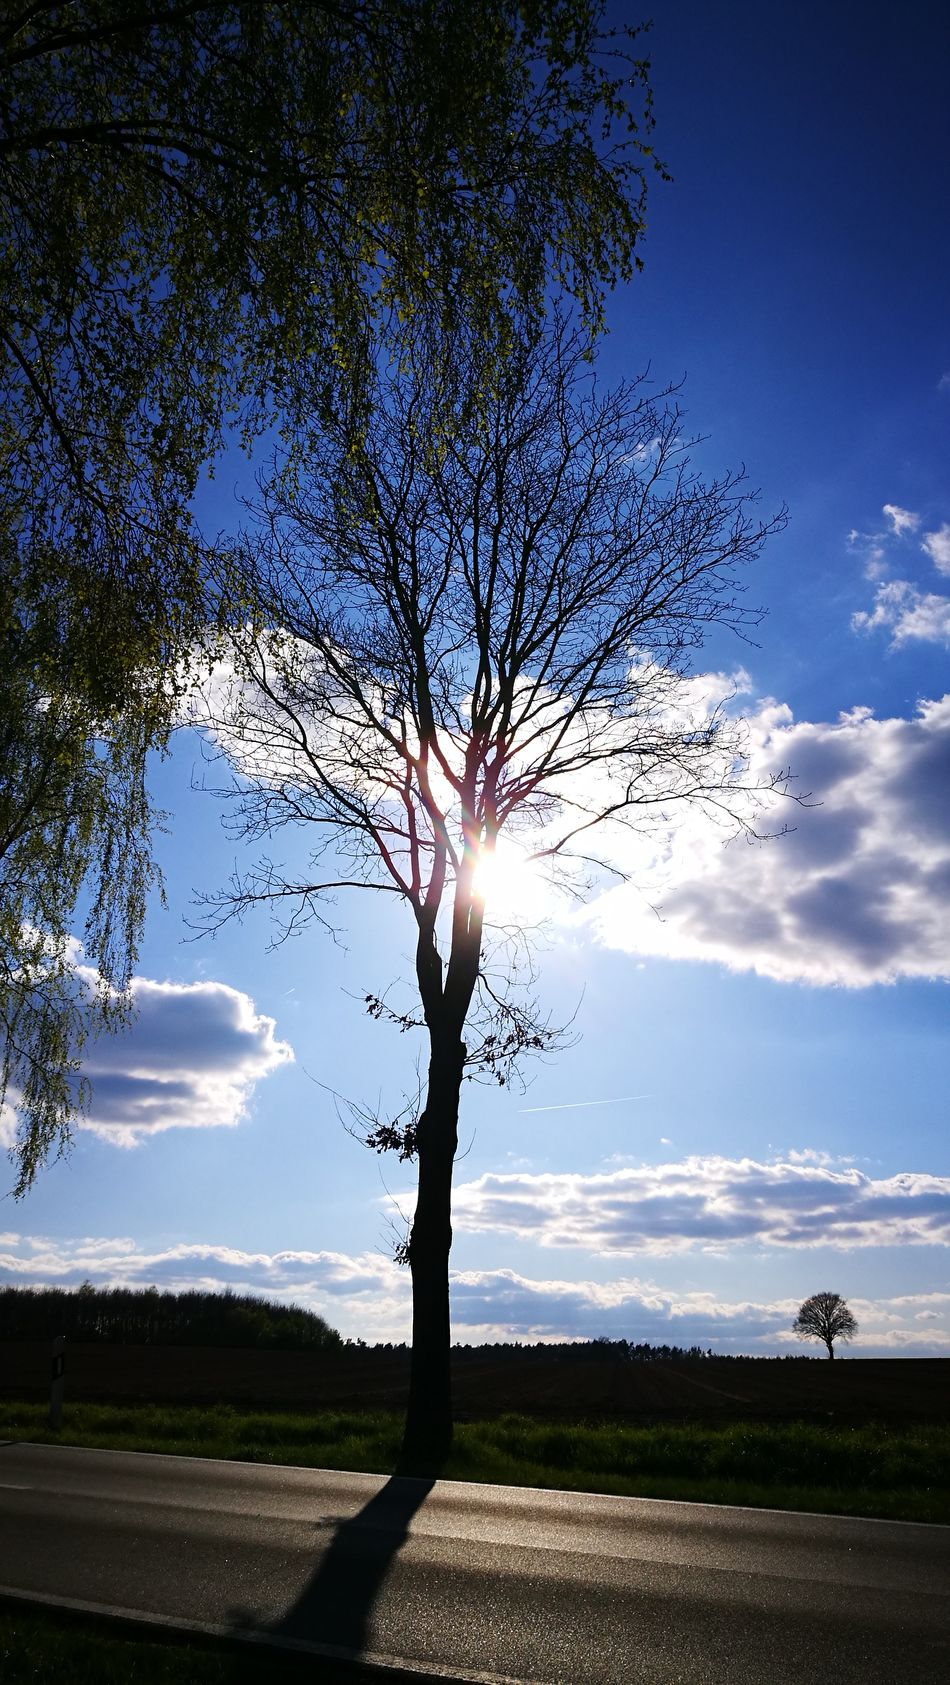 Sunny day in Germany.... Tree Single Tree Tree Trunk Outdoors Landscape Sky Field Nature Beauty In Nature Silhouette Cloud - Sky Scenics Rural Scene No People Day Tree Area Beauty In Nature Originalpicture GetbetterwithAlex